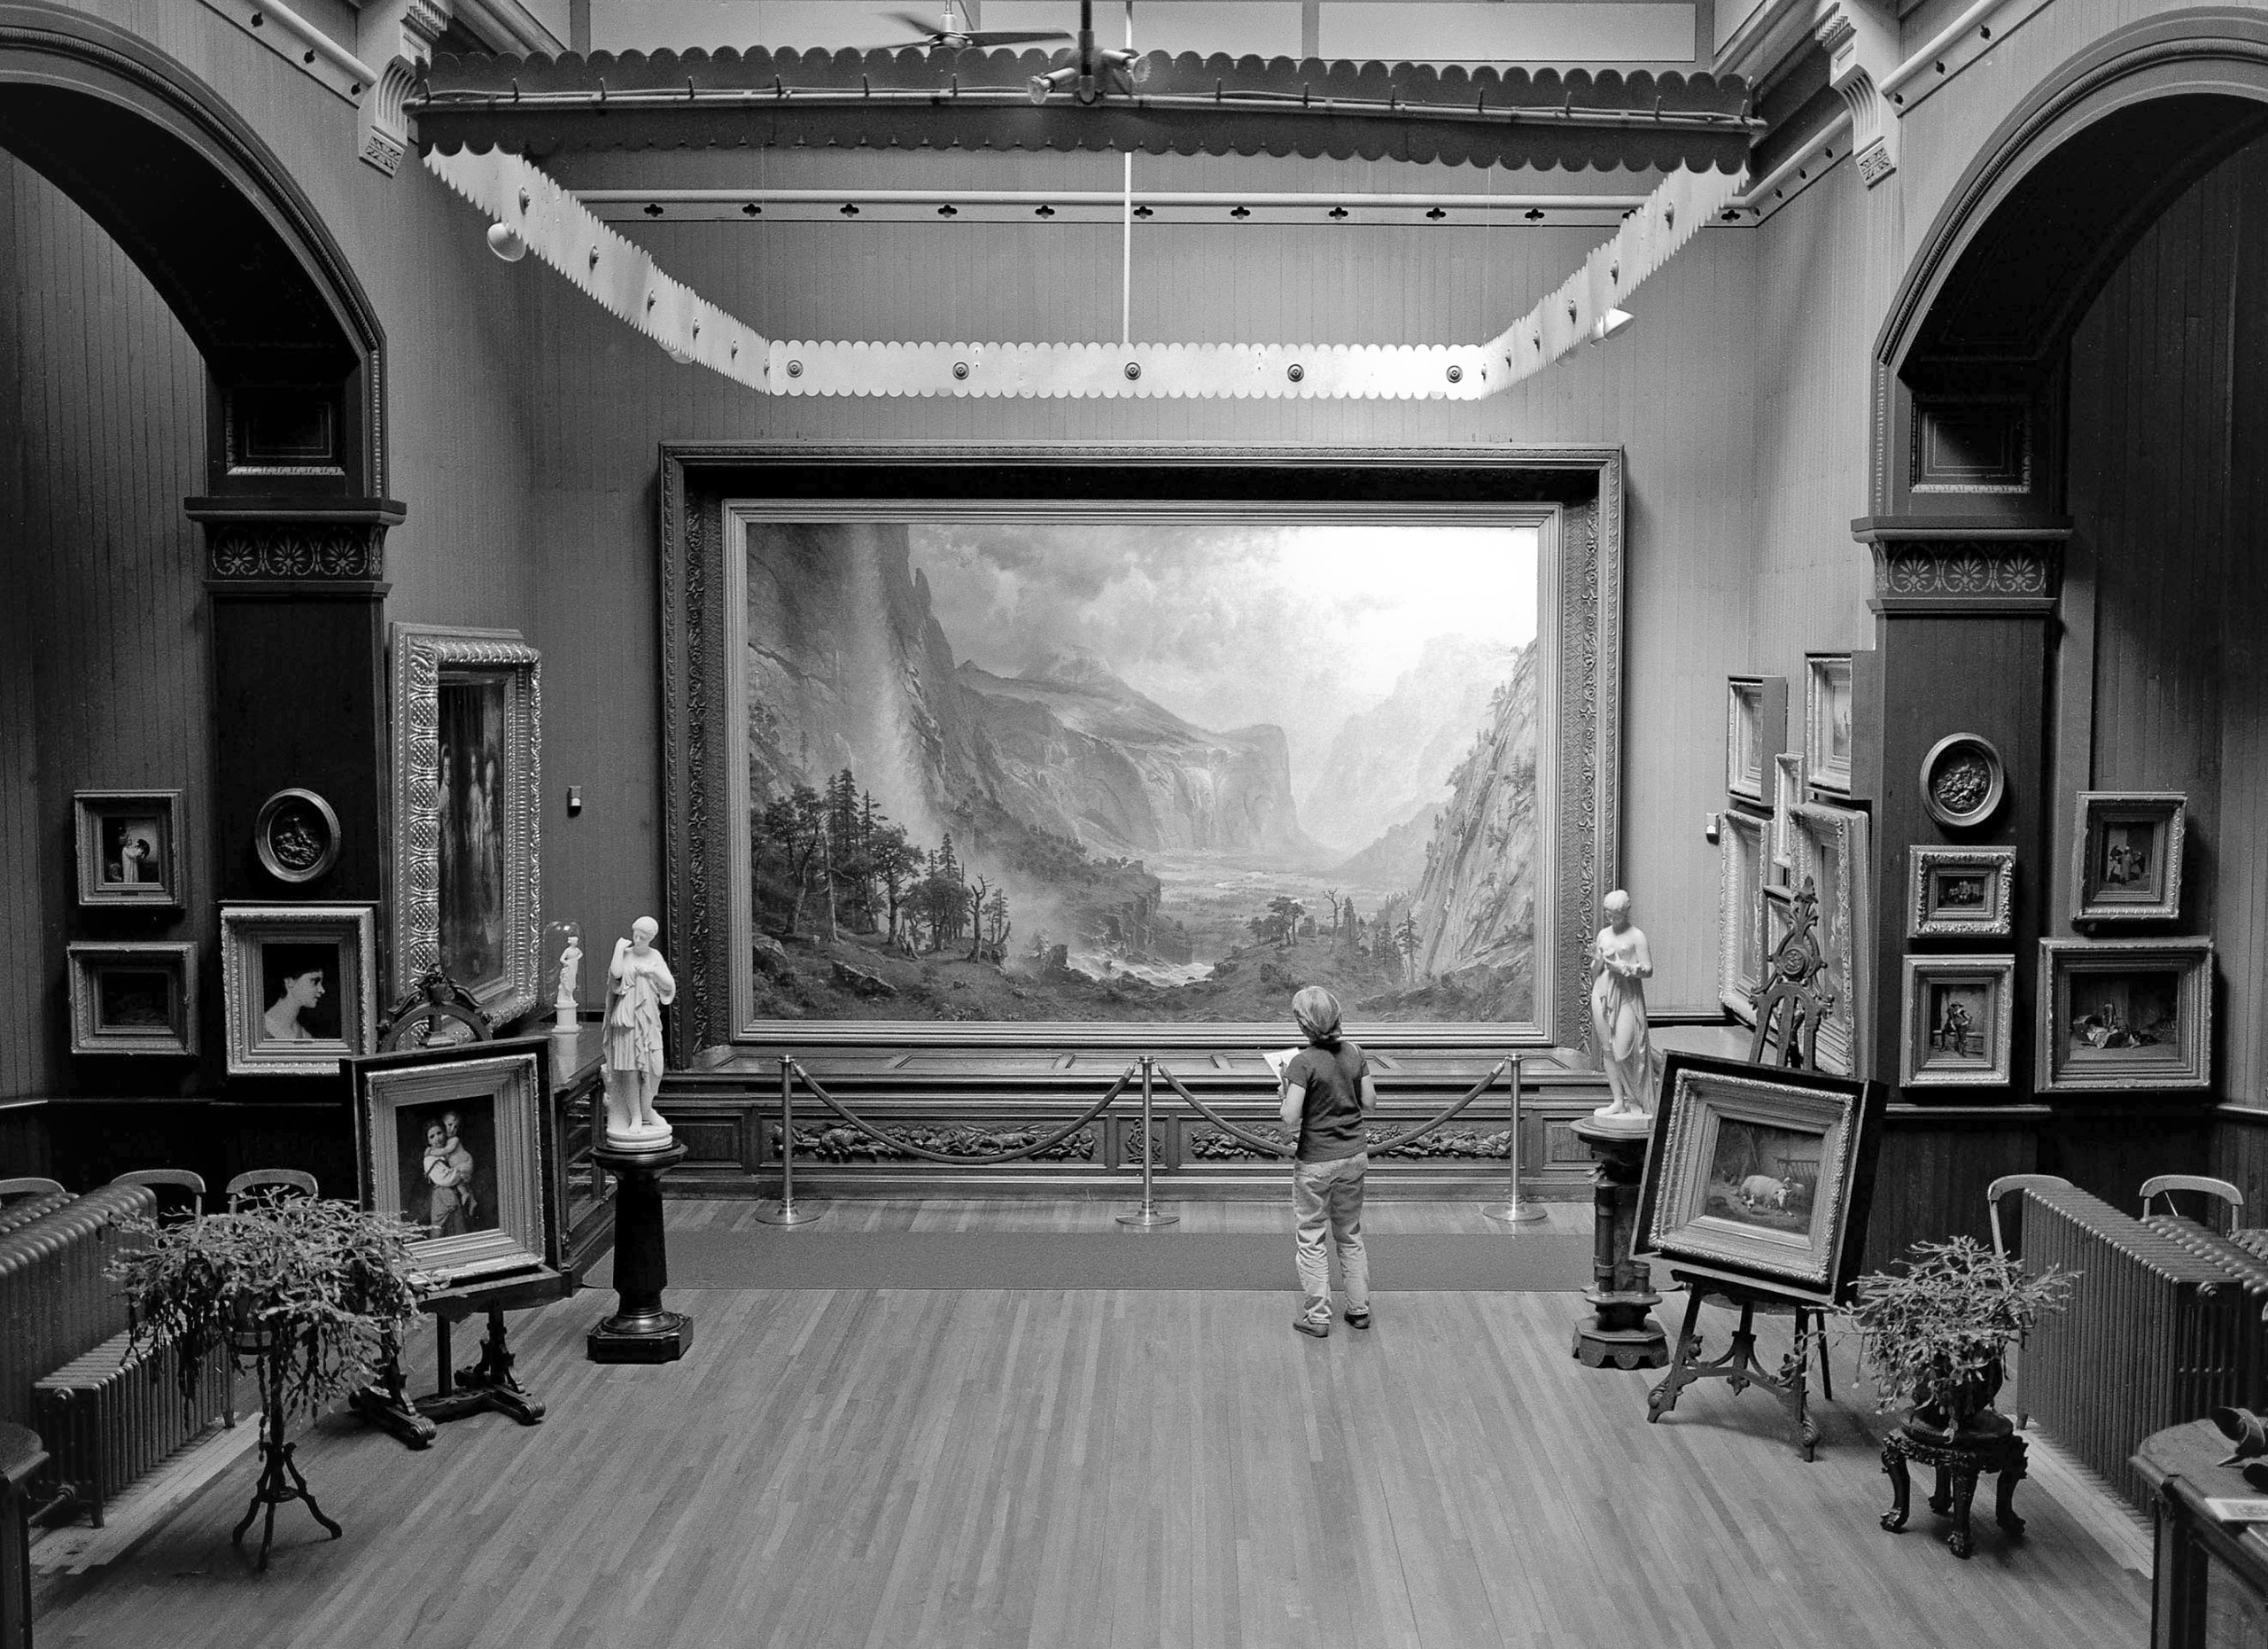 Athenaeum Library, St. Johnsbury, VT 2001        .                                                       The painting is by the famous nineteenth-century German-American artist Alfred Bierstadt of Yosemite Valley in California.